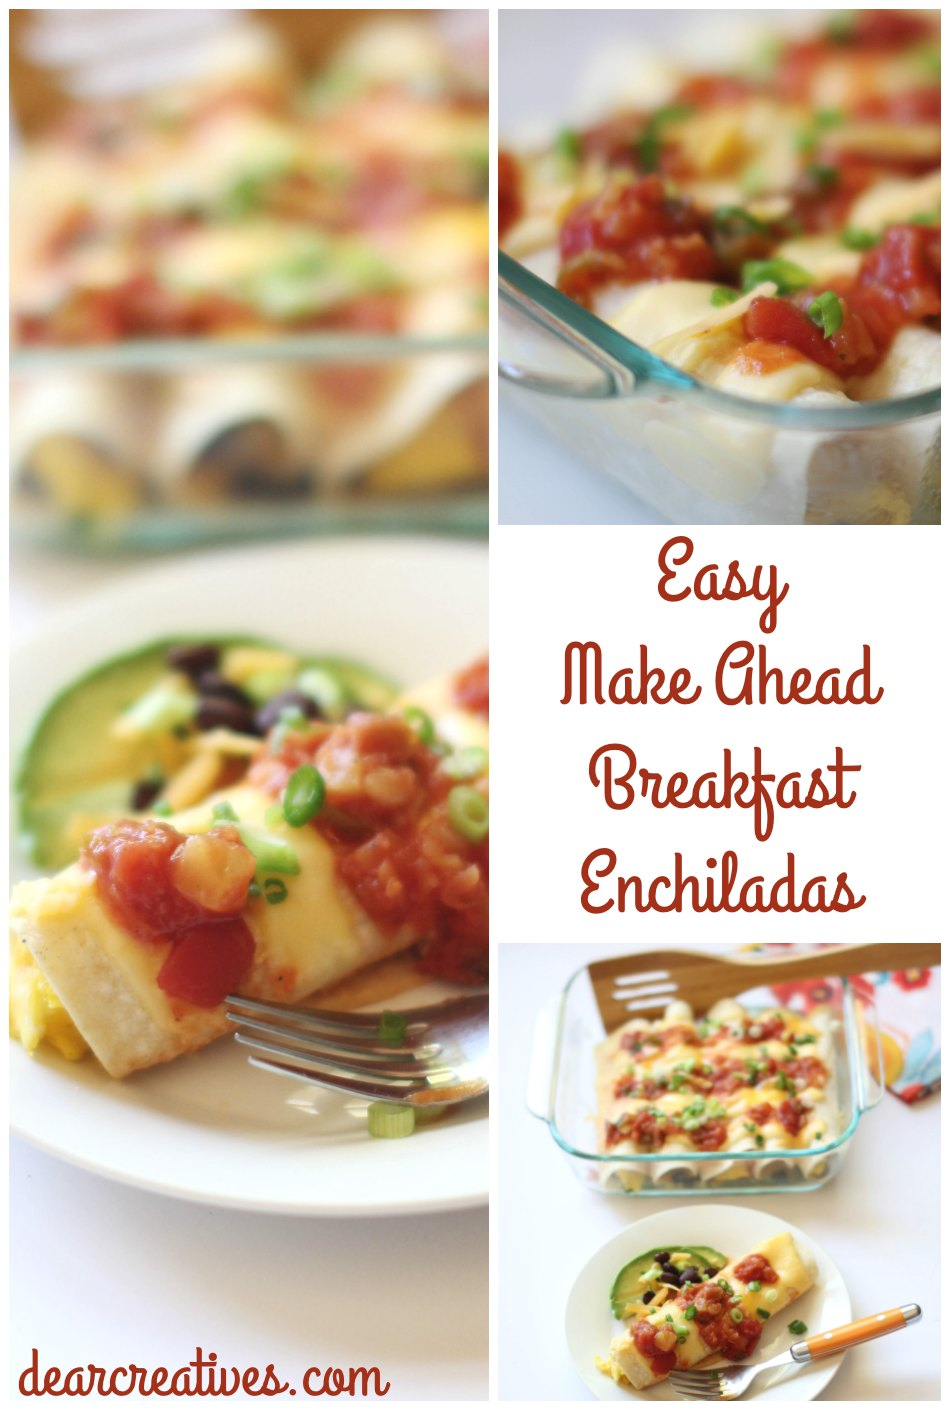 Make-Ahead Breakfast Enchiladas (Egg, Cheese,Black Beans…)